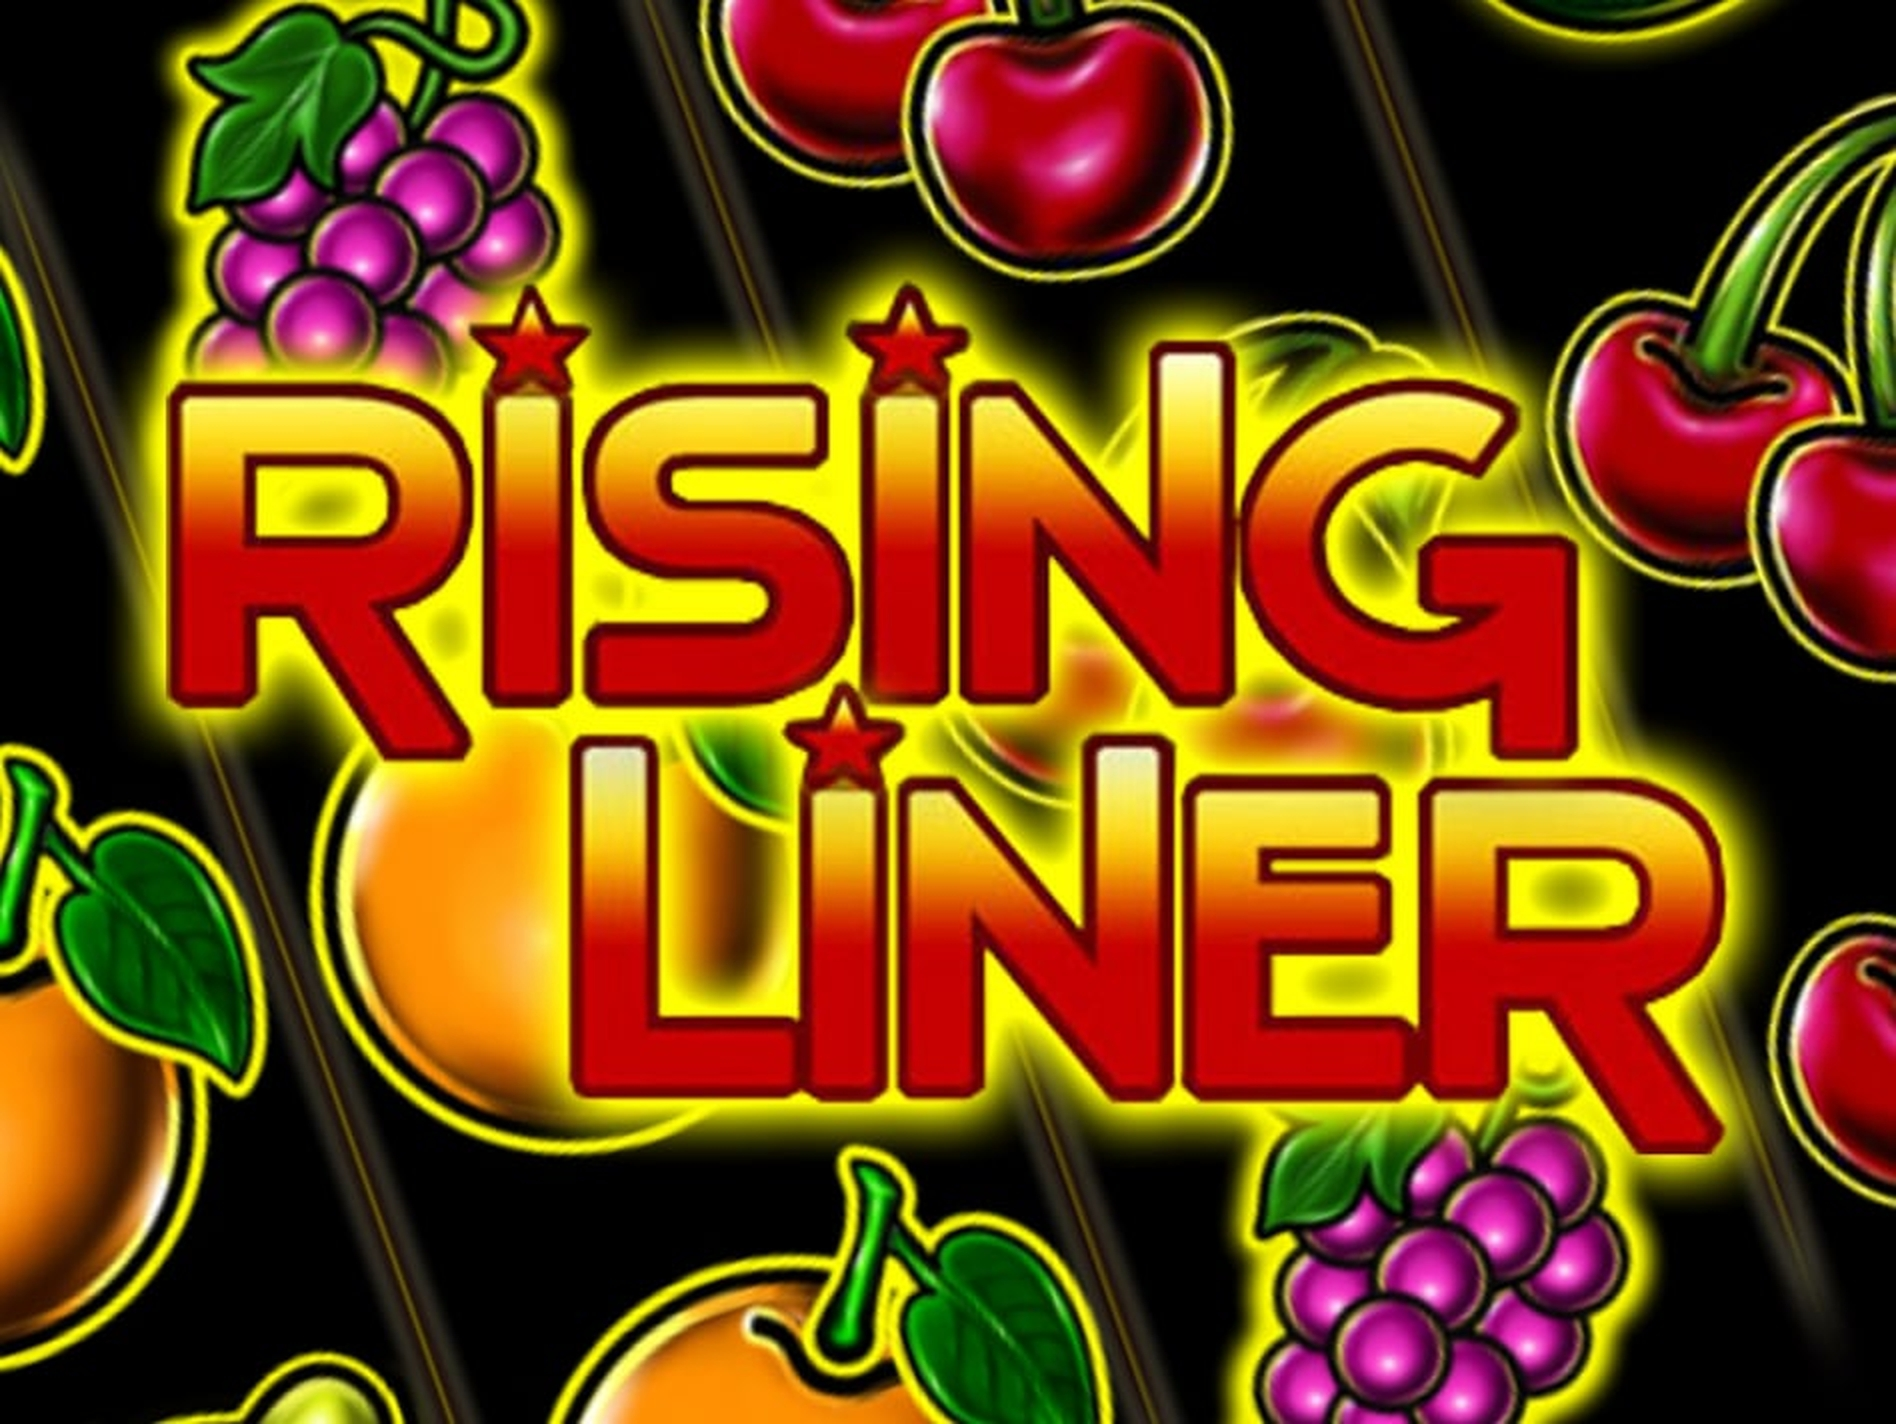 The Rising Liner Online Slot Demo Game by Merkur Gaming